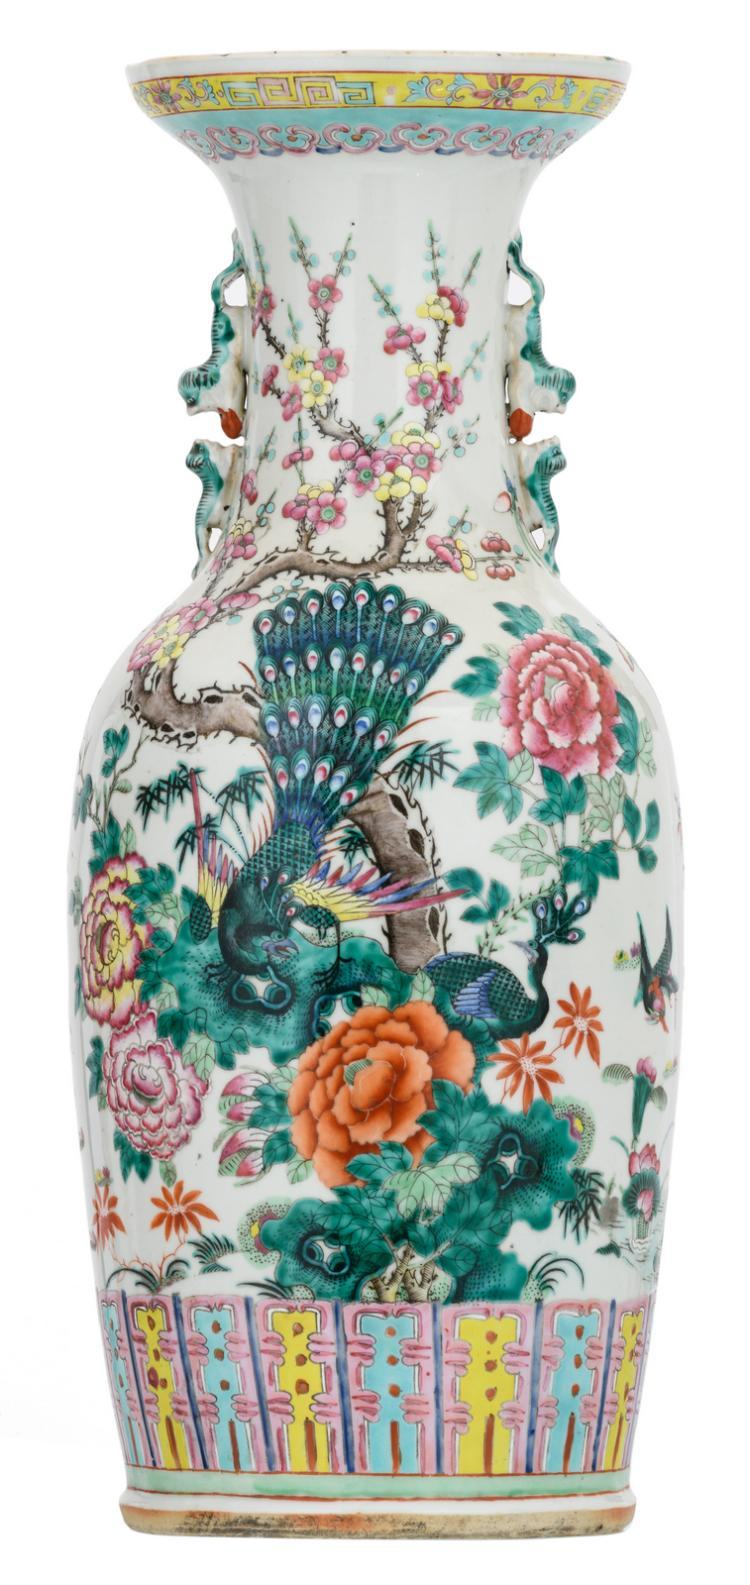 A Chinese famille rose vase, decorated with phoenix, cranes, peacocks and flower branches, H 60 cm